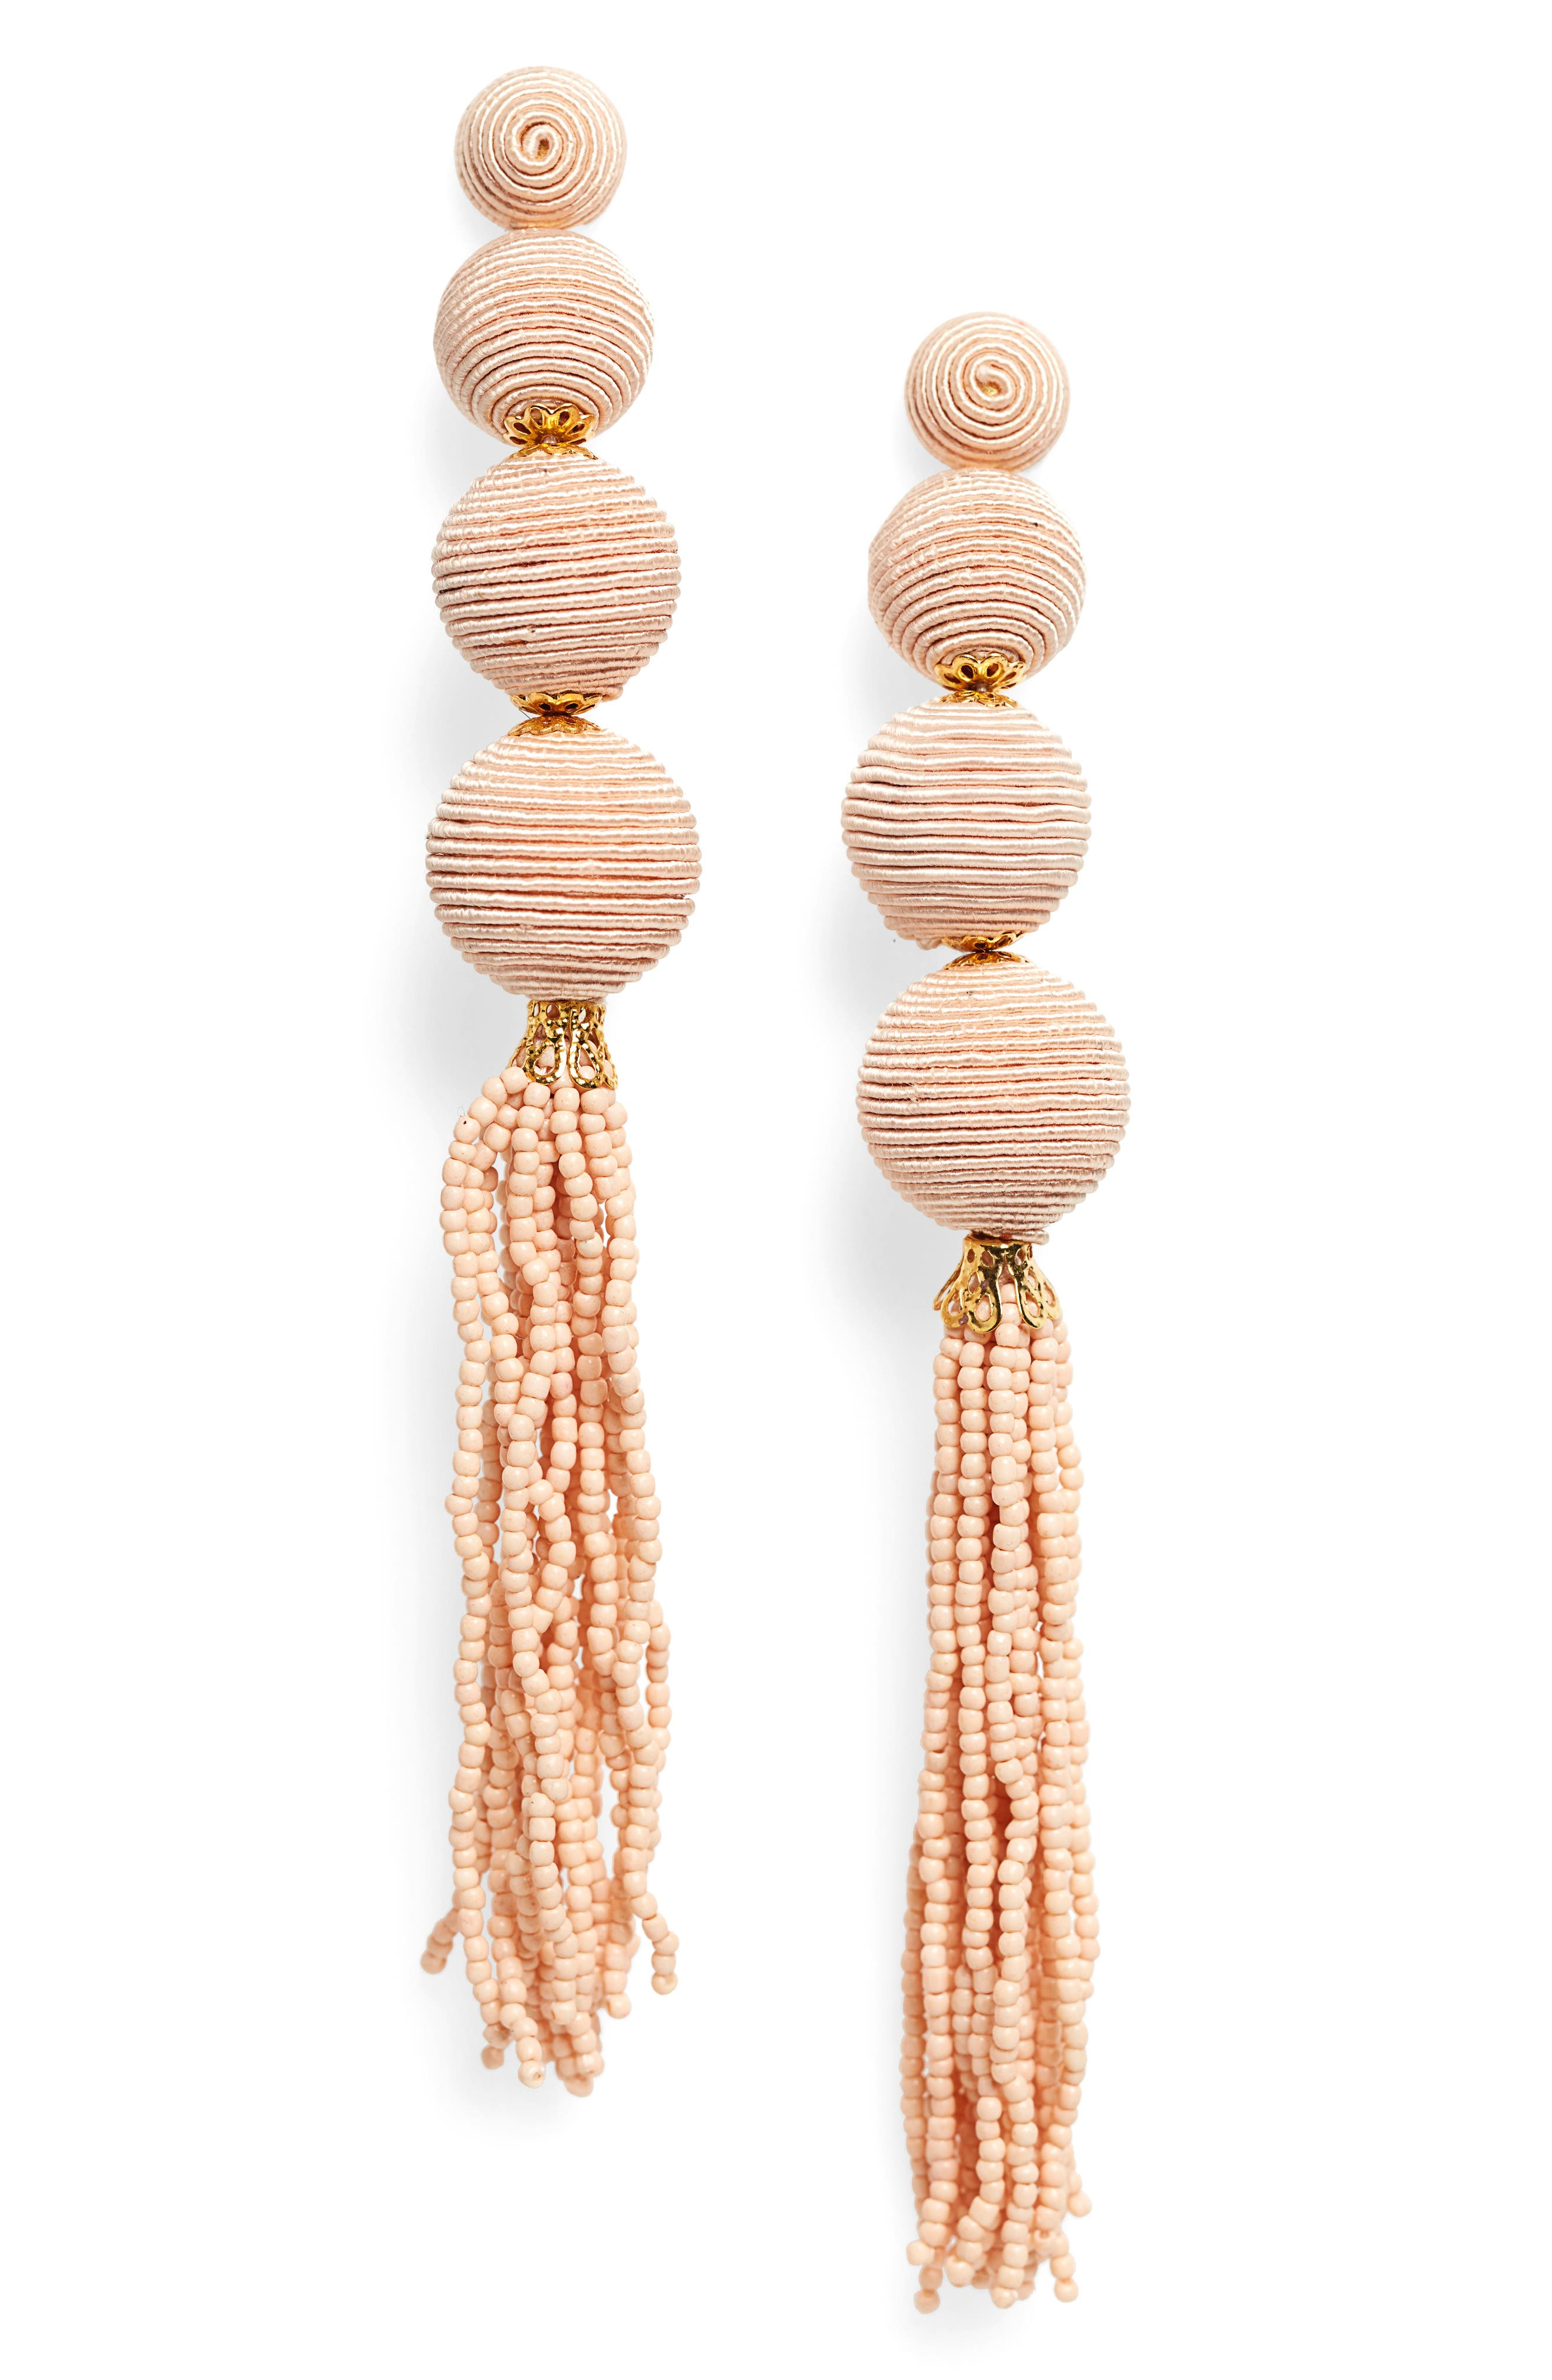 Wrapped Ball & Tassel Statement Earrings,                         Main,                         color, Beige